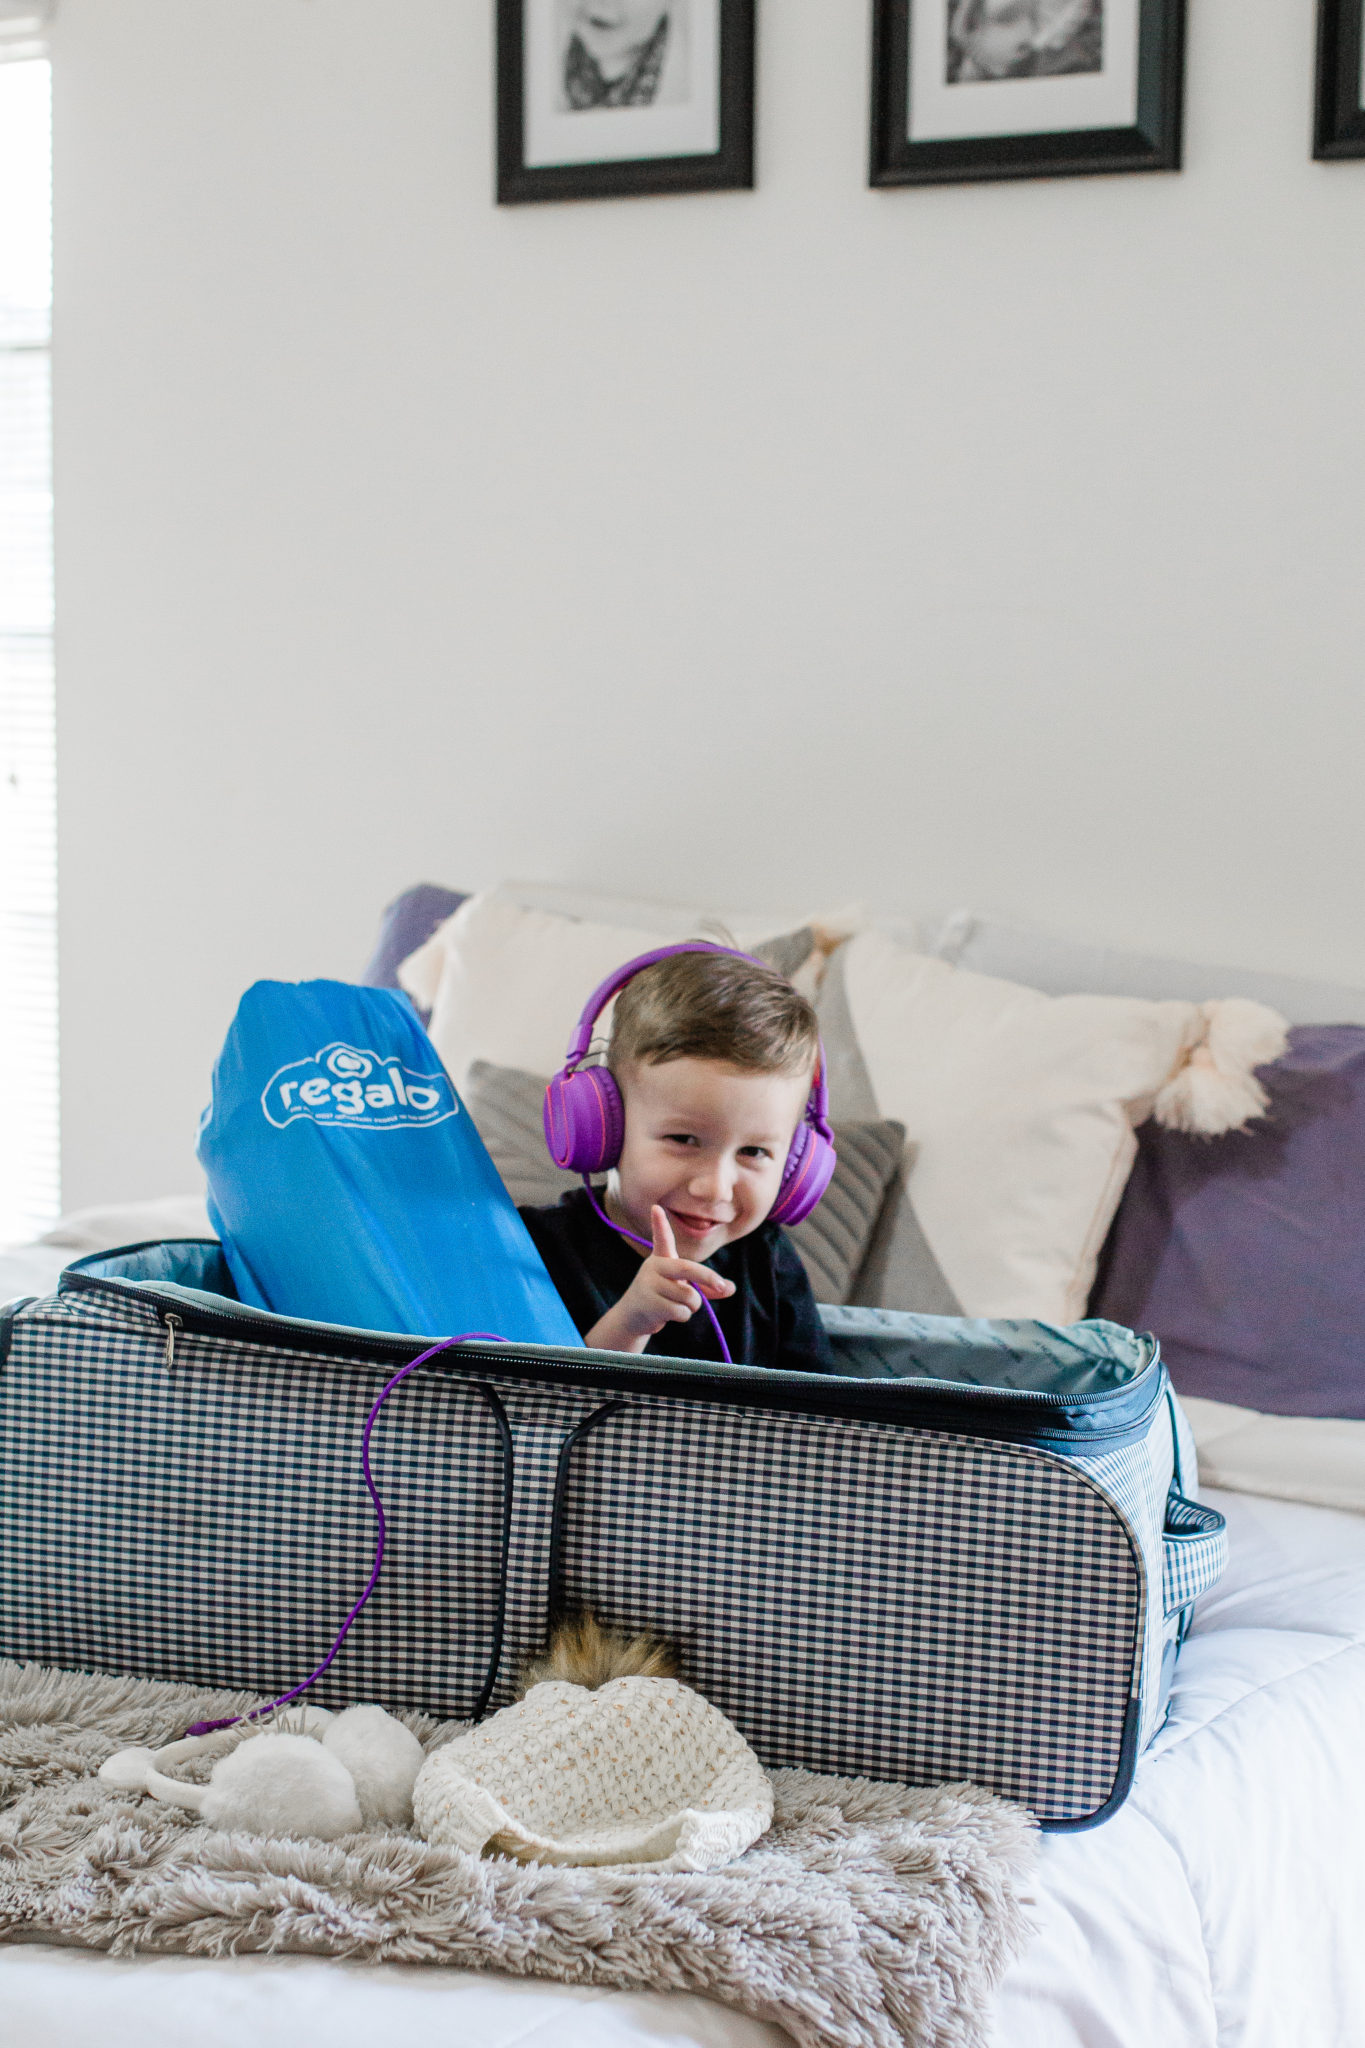 family travel, traveling with toddlers, sleep tips for traveling with toddlers, sleep tips, family vacation tips